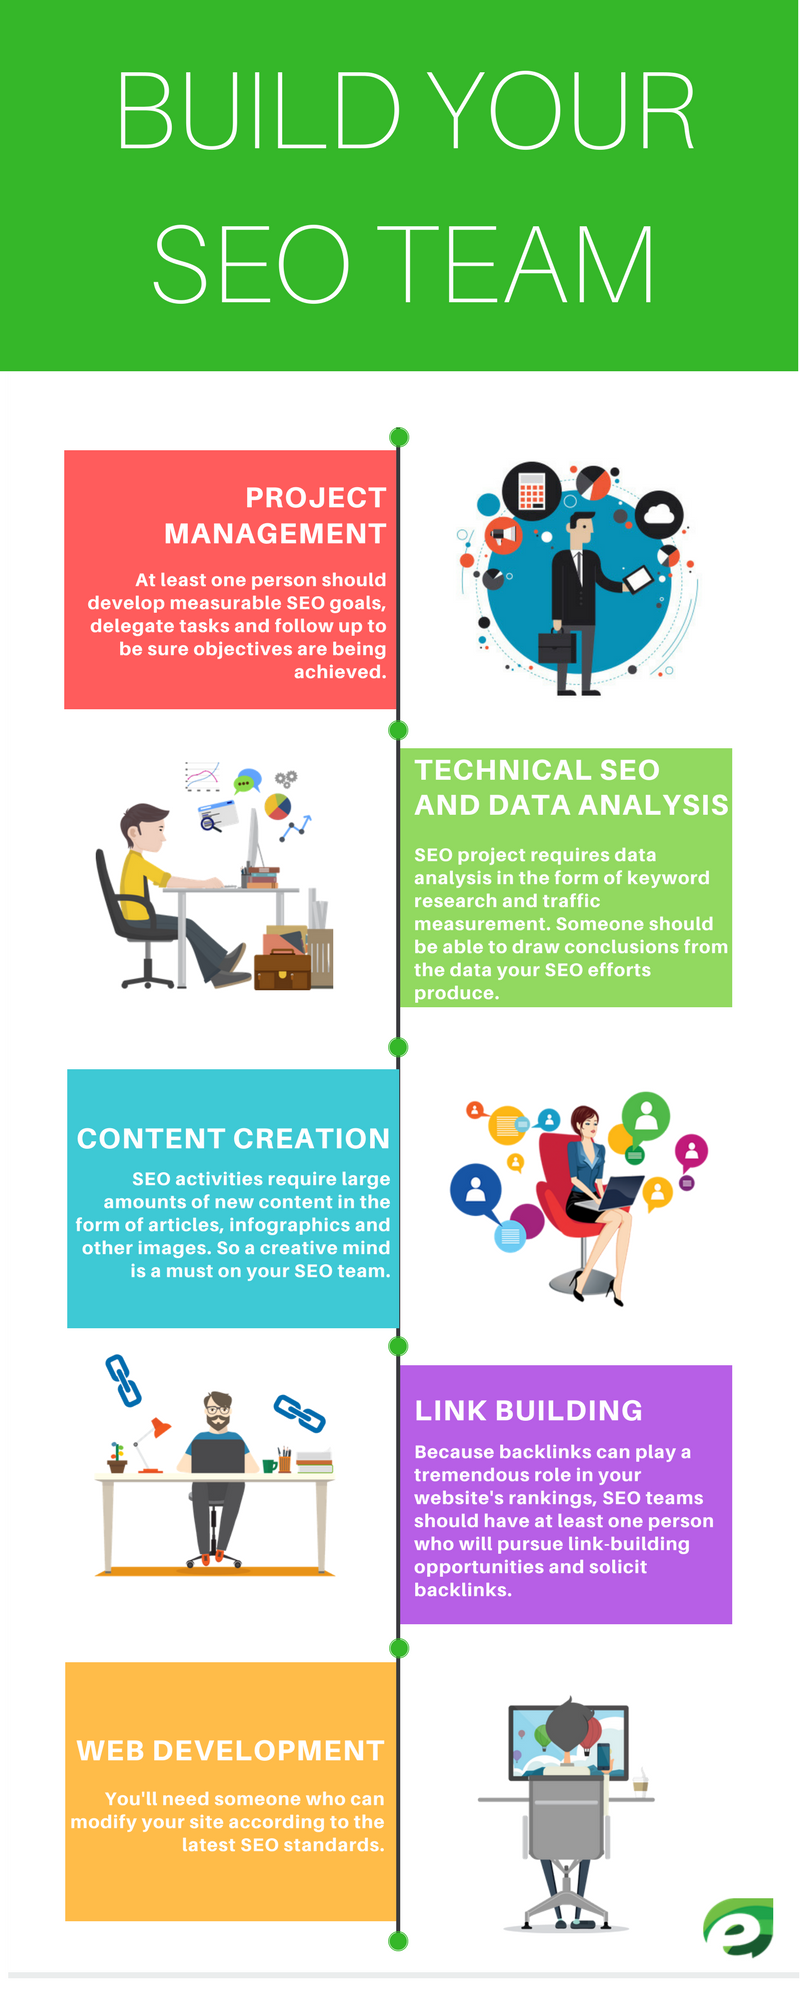 Build Your SEO Team infographic